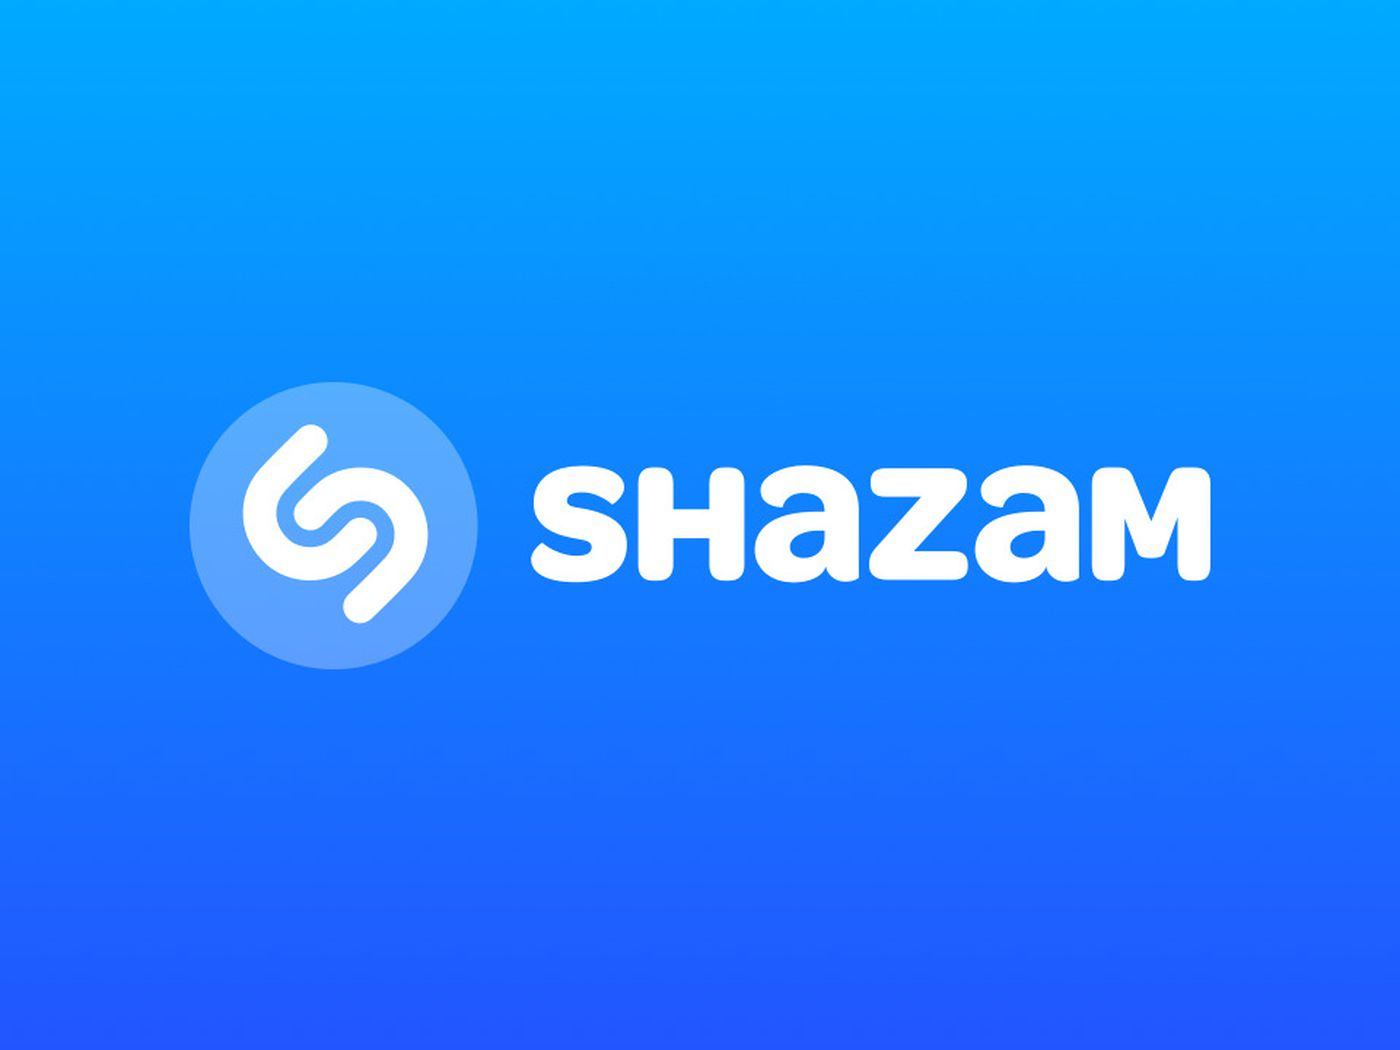 Shazam Can Now Identify Songs Playing Through Your Headphones On Android The Verge It must have been hard staying in line knowing your influences did it all the time it must have been strange living in blue and see me shut down as though we will try to respond as soon as possible. shazam can now identify songs playing